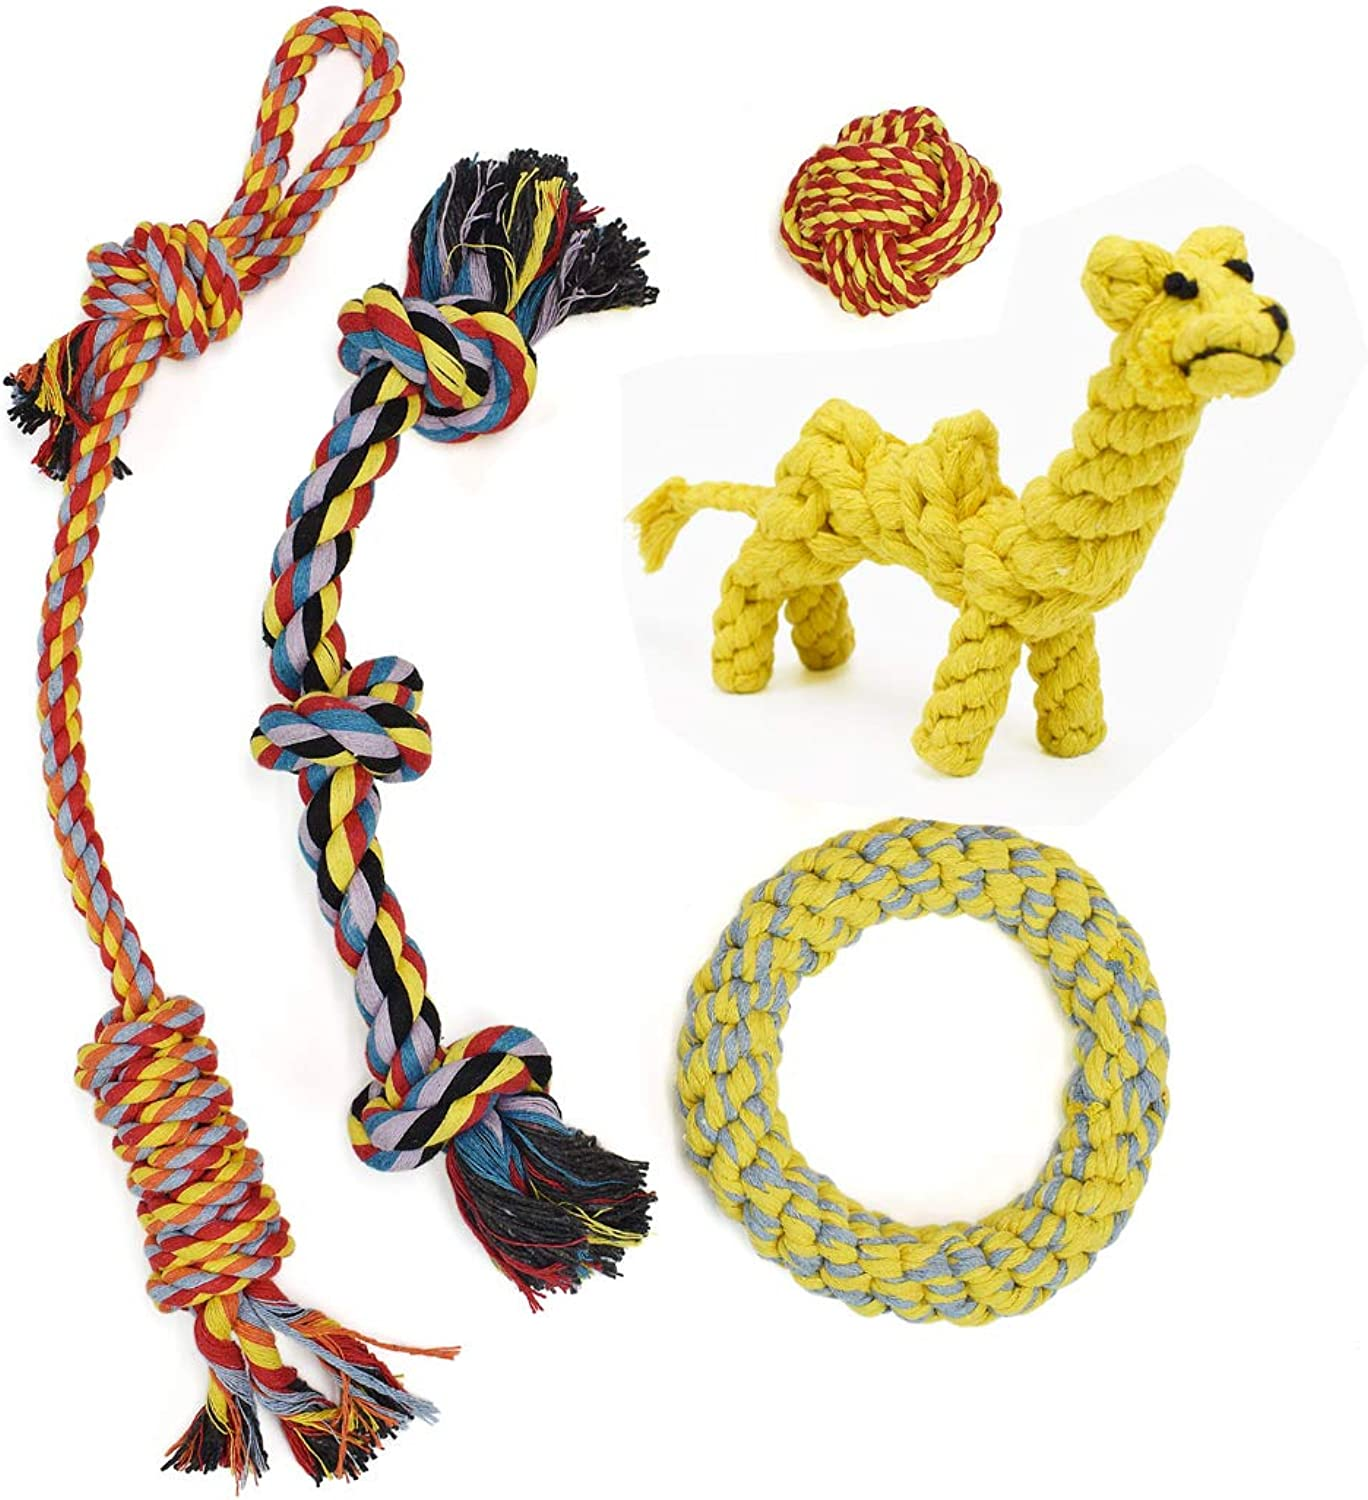 AIPP Pack of 5 Indoor and Outdoor Pets Puppy Dog Pet 100% Cotton Rope Toys for Medium to Large Dogs